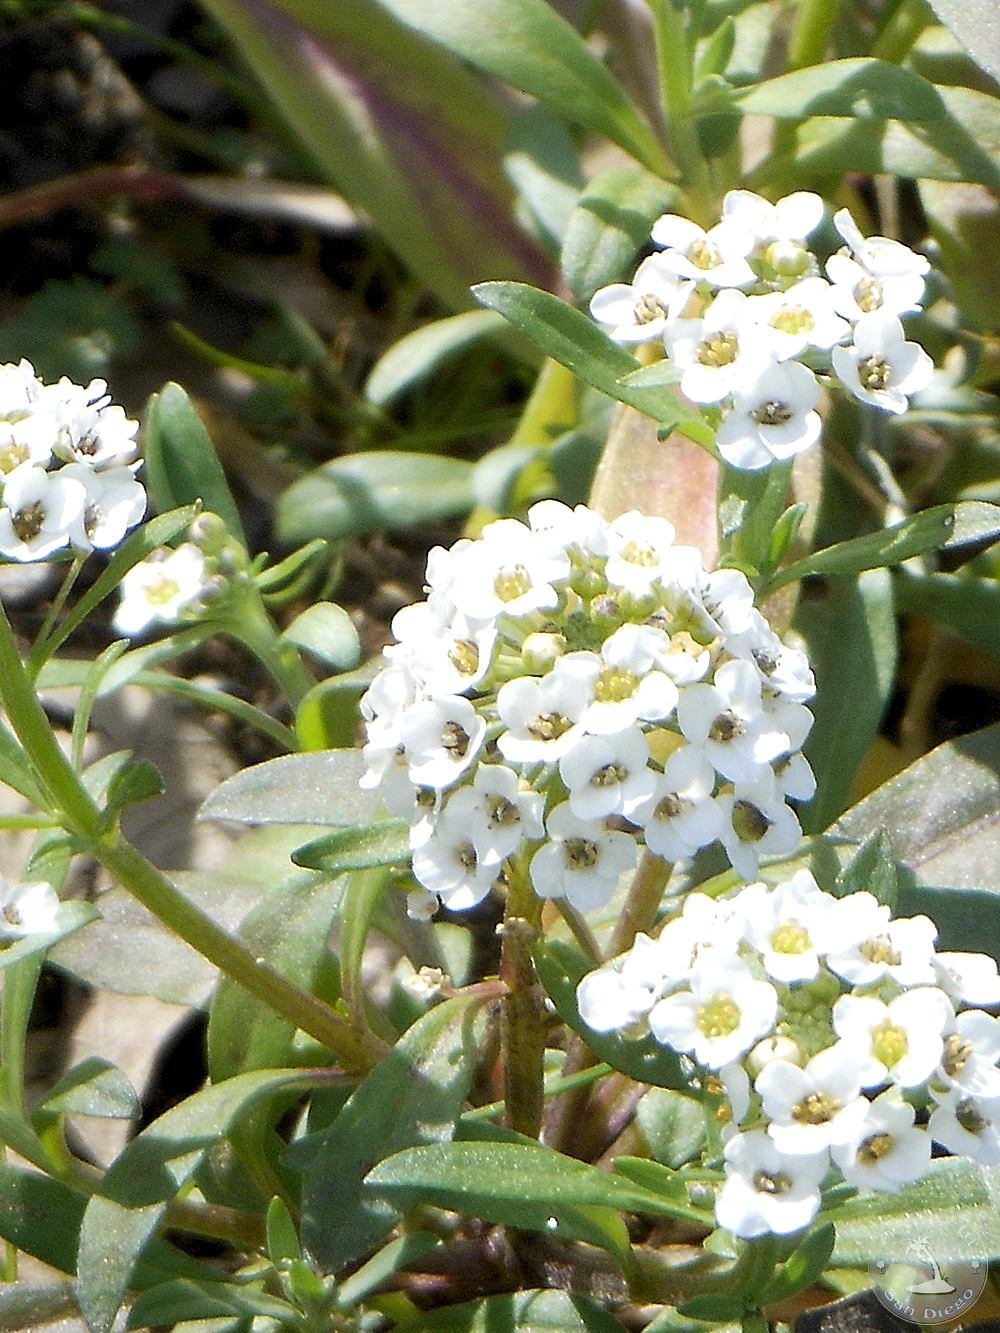 White flower san diego images flower decoration ideas a day in san diego san diego flowers in bloom sweet alyssum white flowers san diego mightylinksfo Images